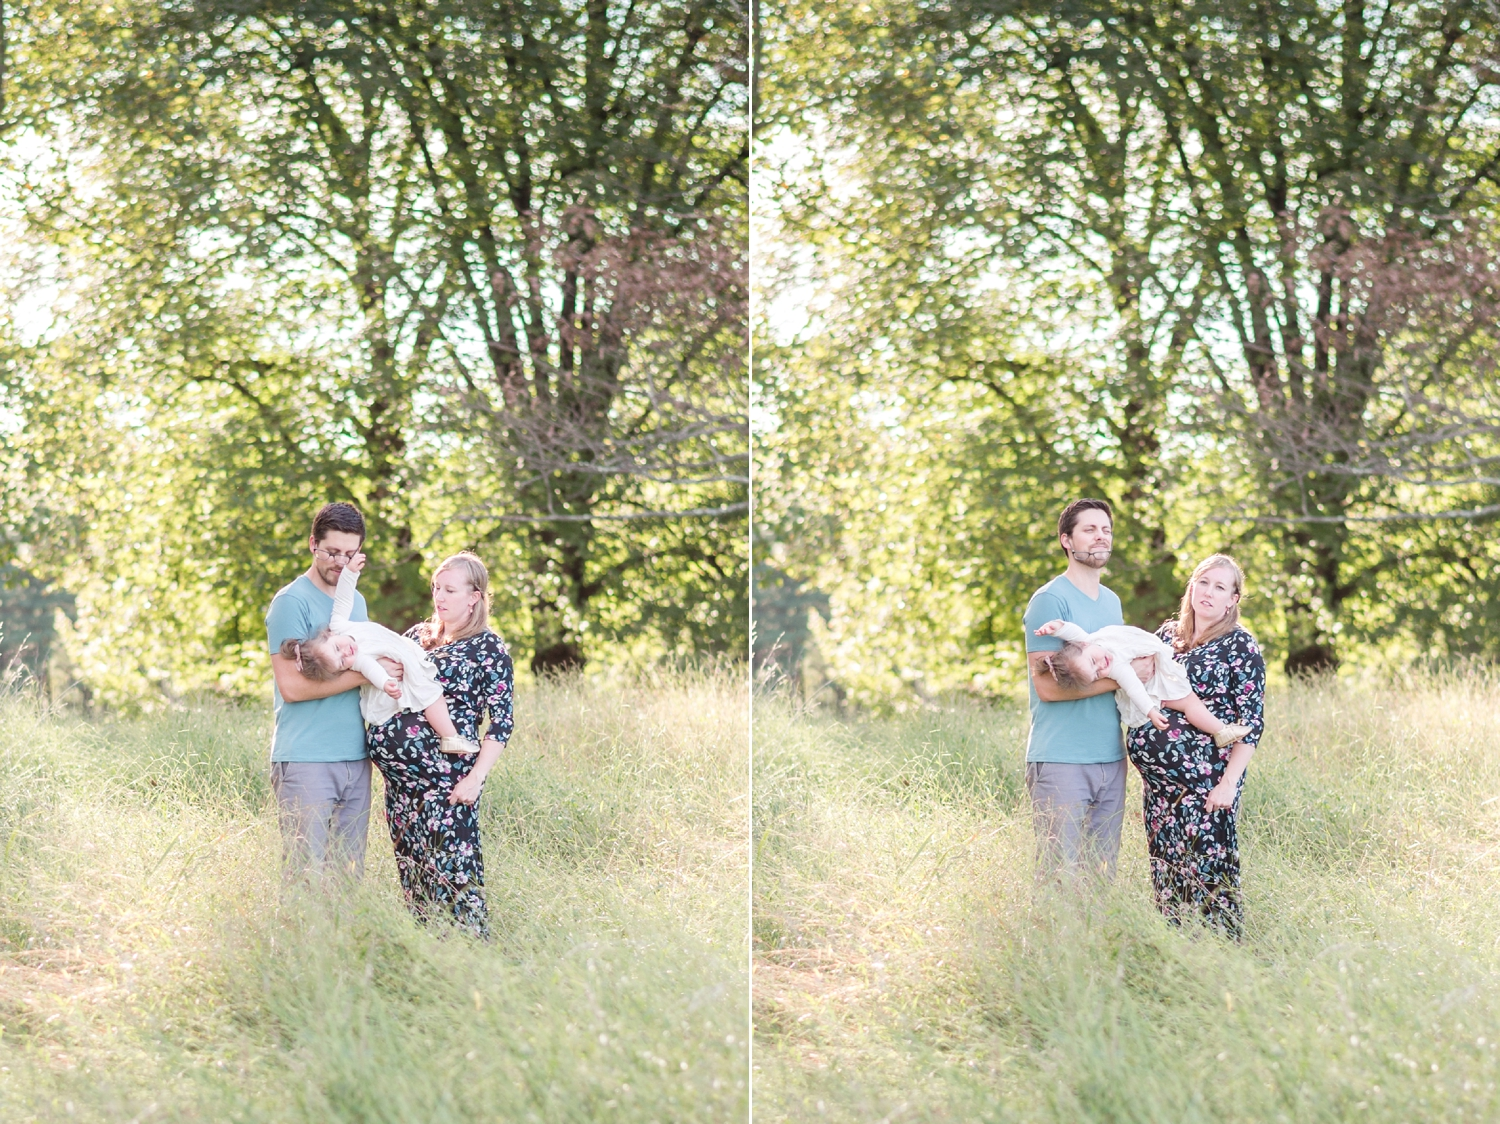 Yep, every family shoot! A baby trying to wrangle free and throwing a tantrum. And Payton knocked Kevin's glasses off of his head. Haha!!